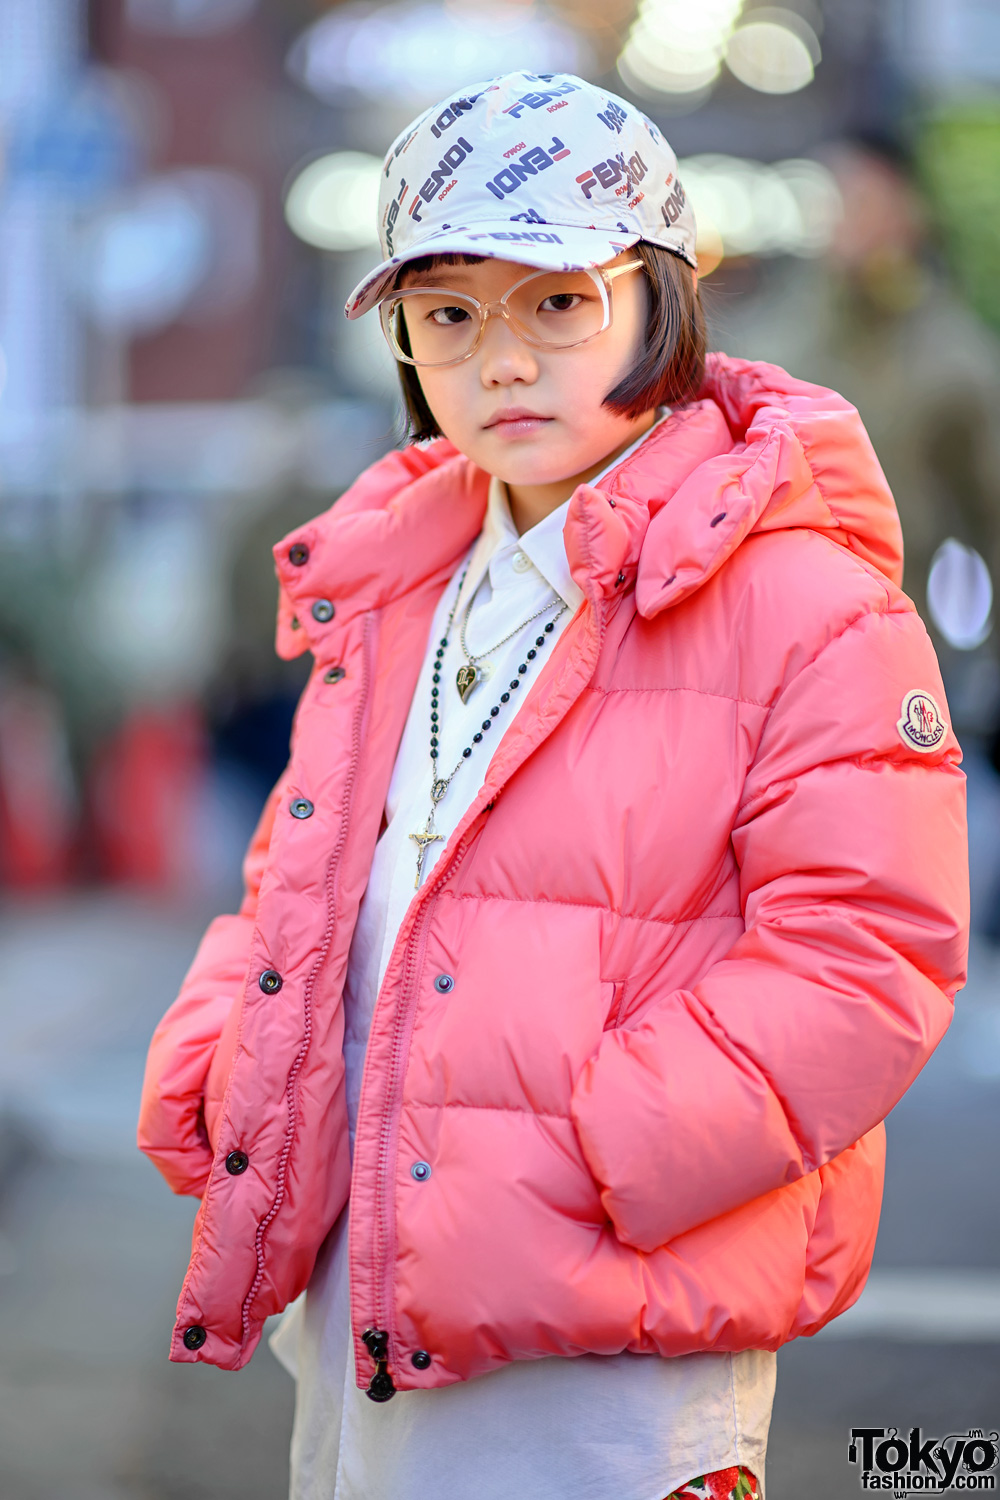 Coco Princess in Harajuku w/ Moncler for Unicef Jacket ...